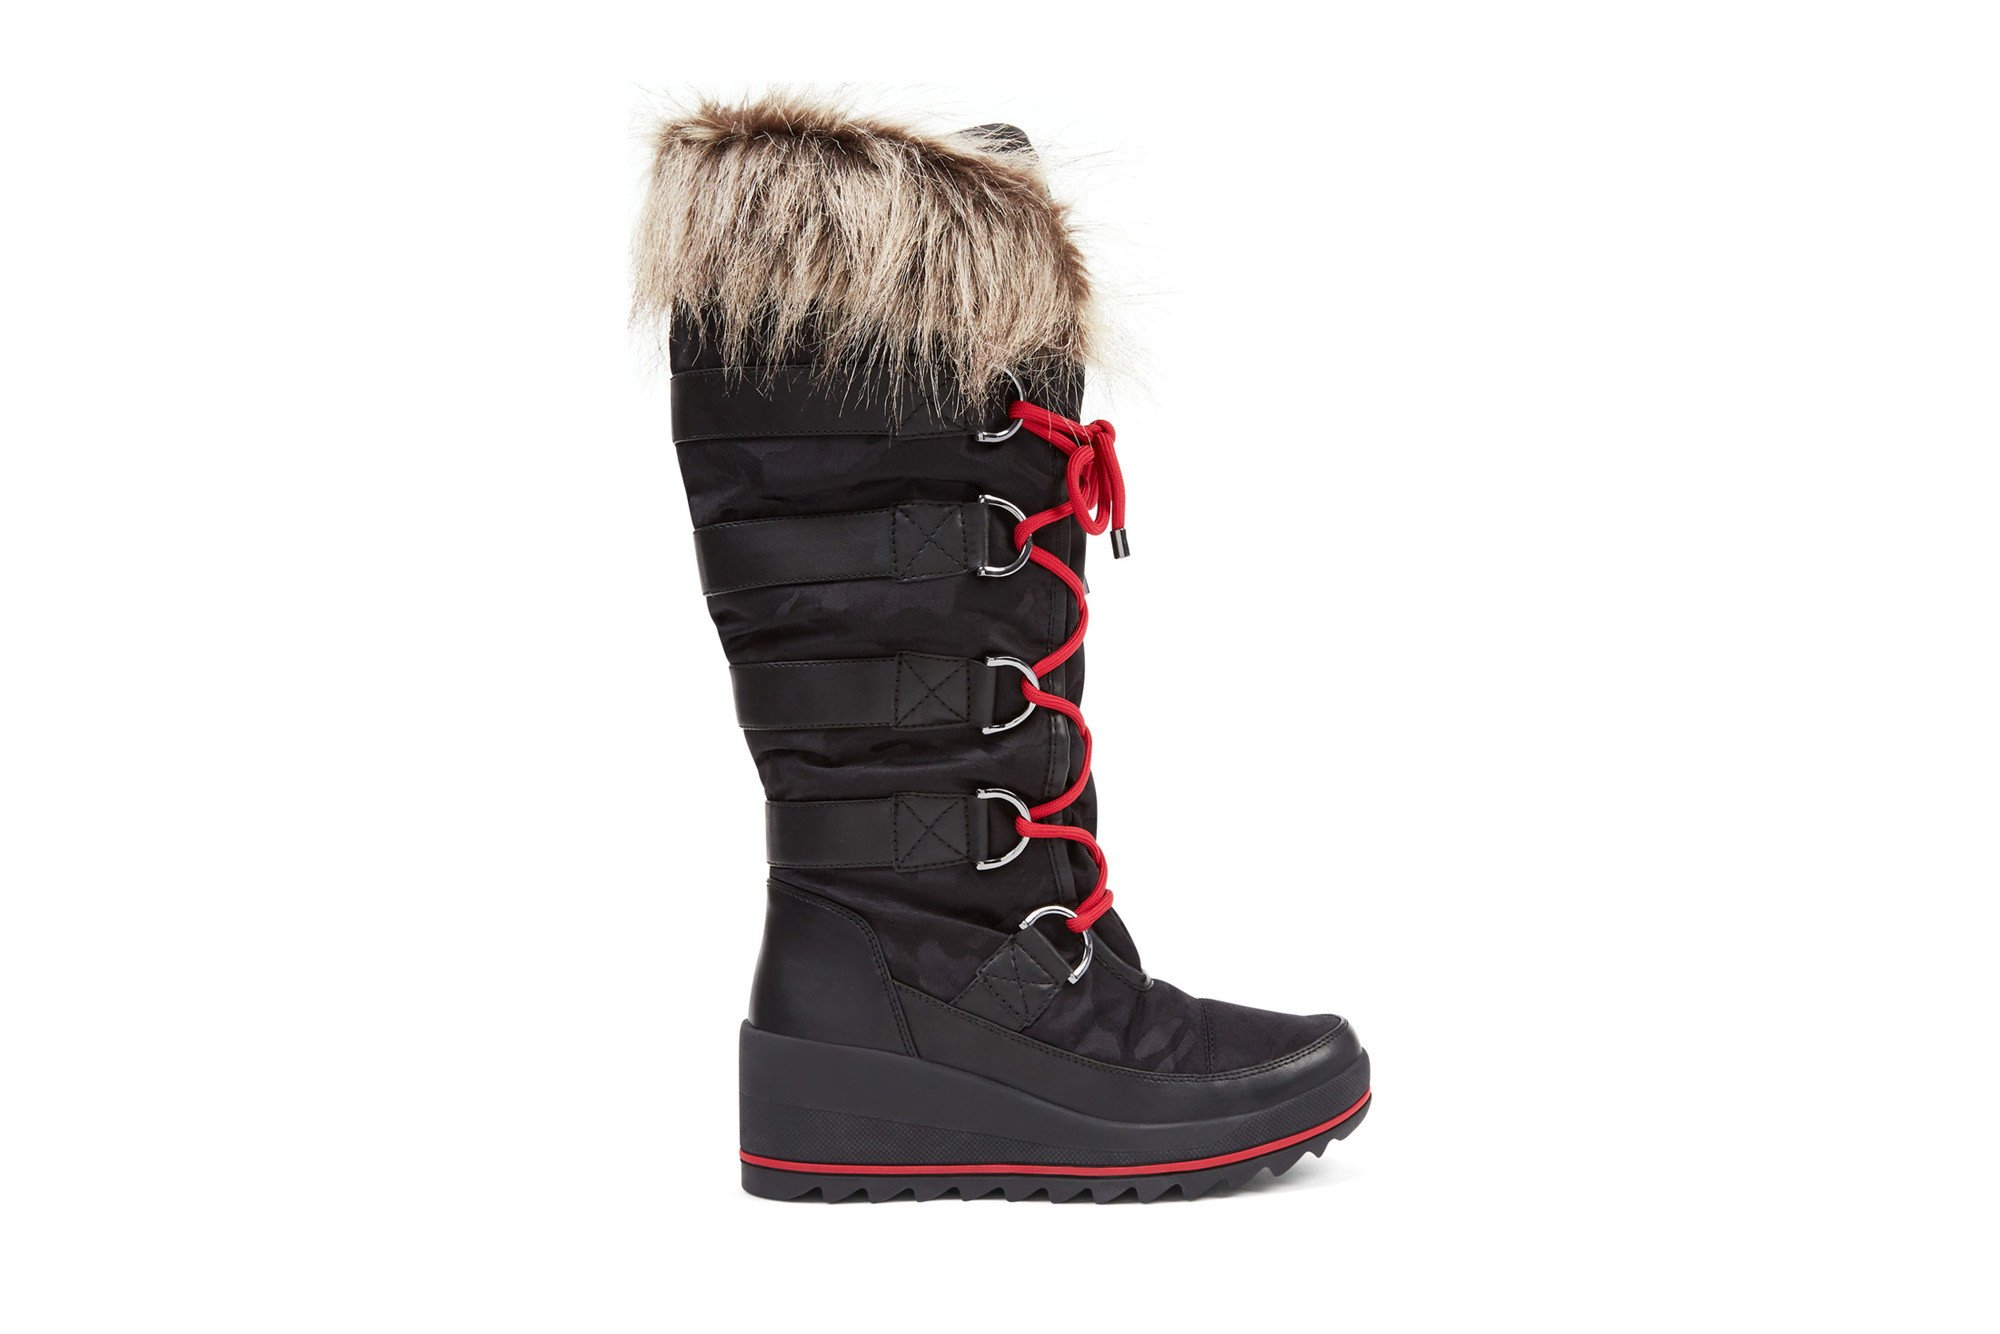 These snow boots will get you through the nightmarish cold